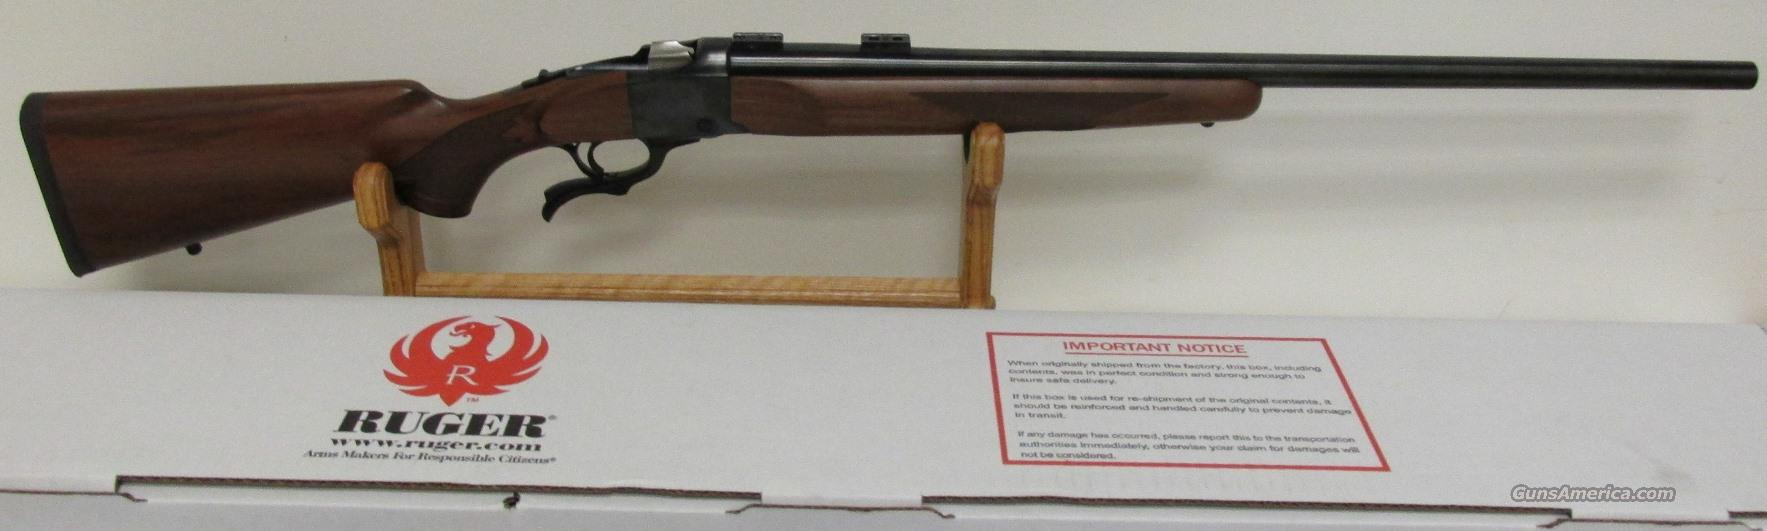 Ruger No.1 220 Swift Varminter #11381 NIB 1-V ($100.00 under Dealer cost!)  Guns > Rifles > Ruger Rifles > #1 Type